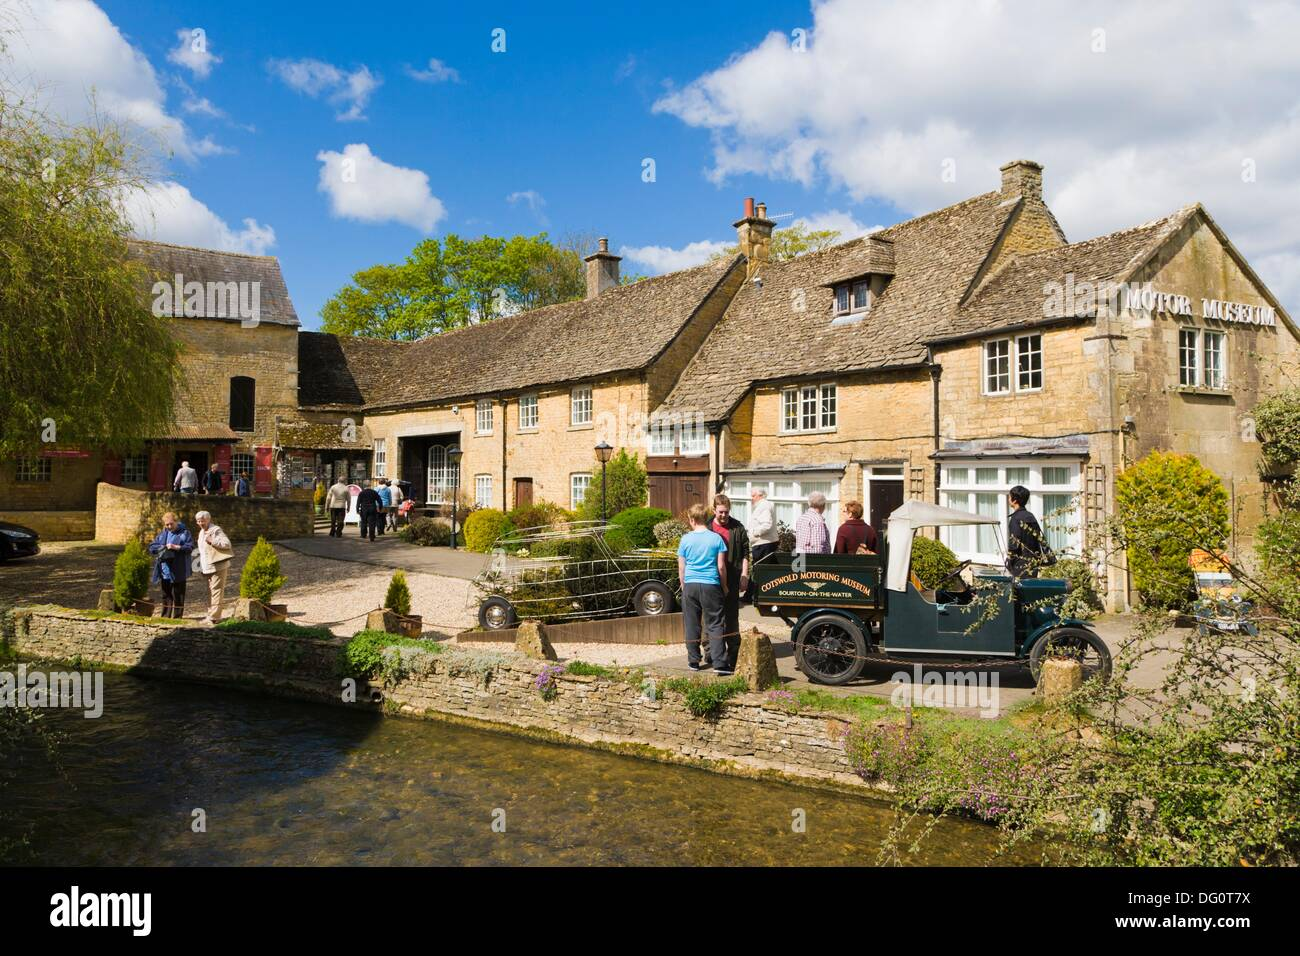 The Cotswold Motoring Museum, home of Brum, Bourton on the Water, Venice of the Cotswolds, Gloucestershire, England, UK - Stock Image